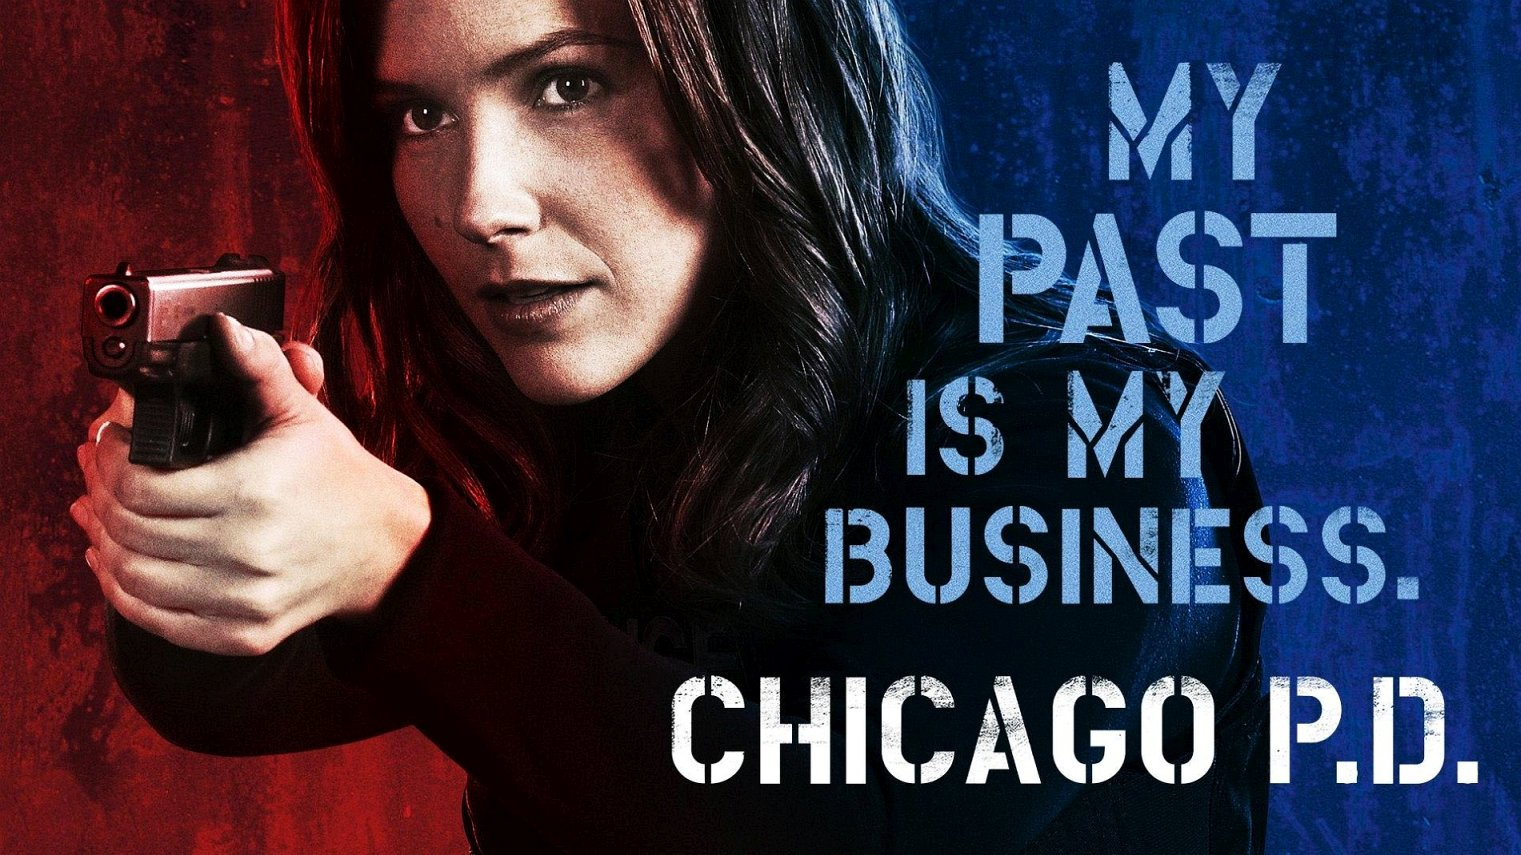 Chicago P.D. season 5 episode 11 watch online